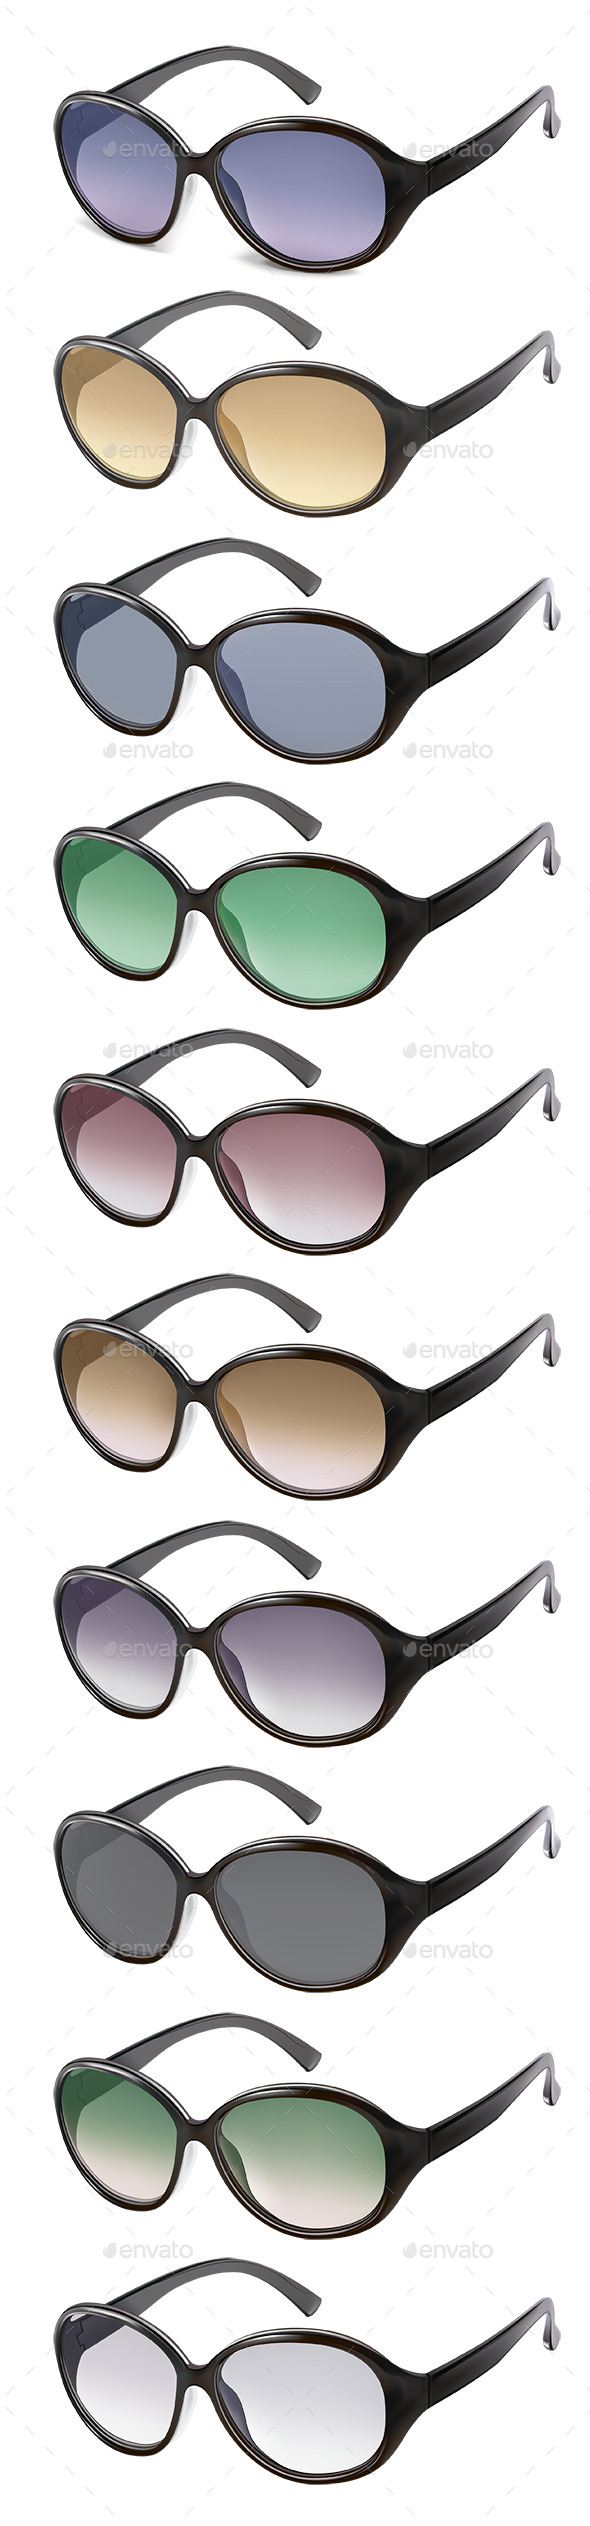 GraphicRiver Sunglasses 11177444